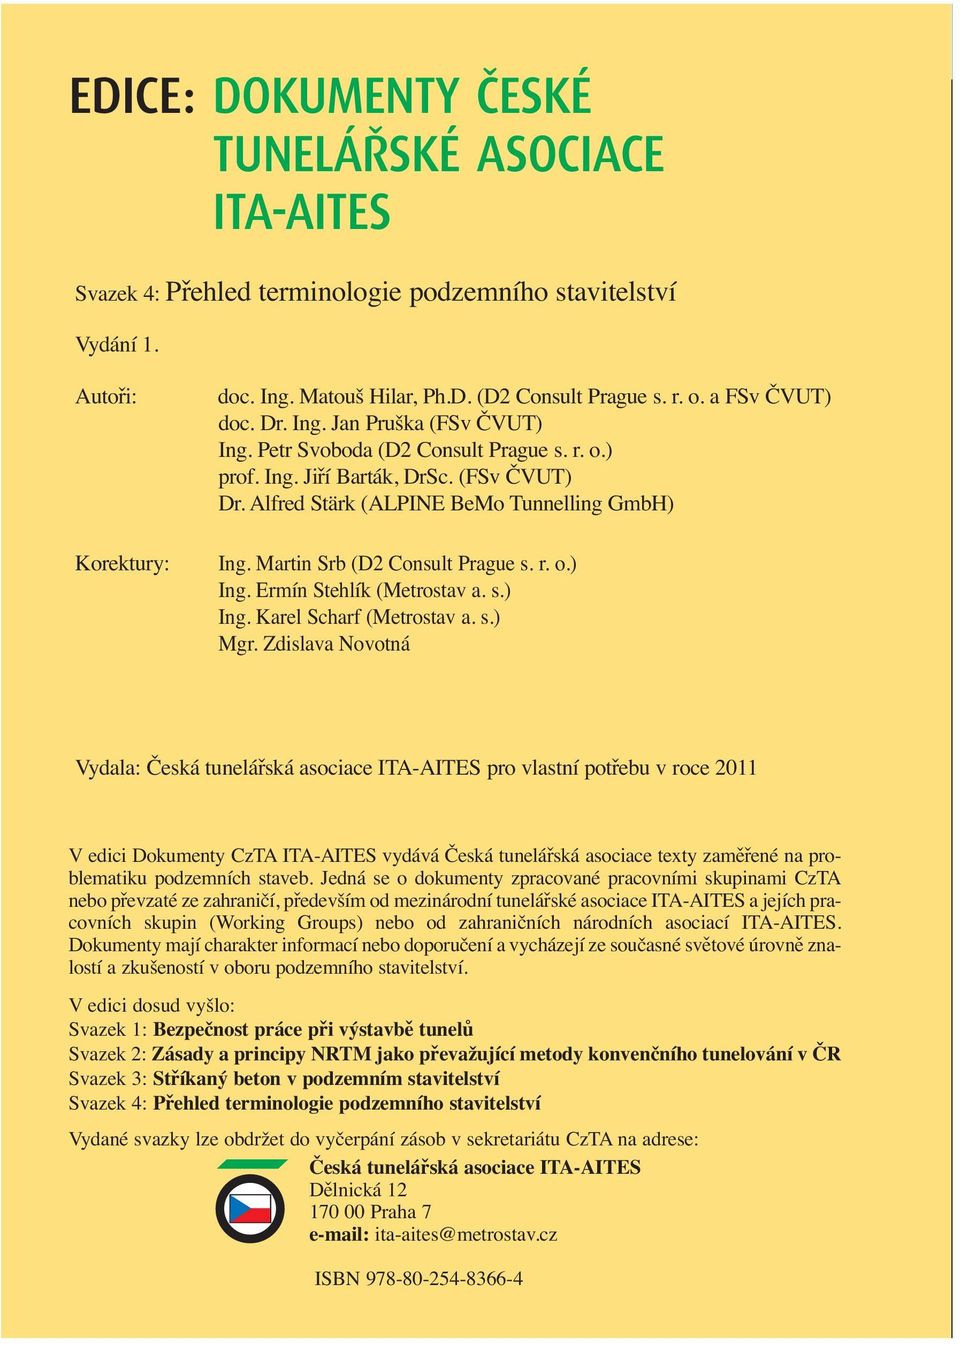 ASOCIÁCIE ITA-AITES MAGAZINE OF THE CZECH TUNNELLING ASSOCIATION AND SLOVAK TUNNELLING ASSOCIATION ITA-AITES Vydání 1. Autoři: doc. Ing. Matouš Hilar, Ph.D. (D2 Consult Prague s. r. o.